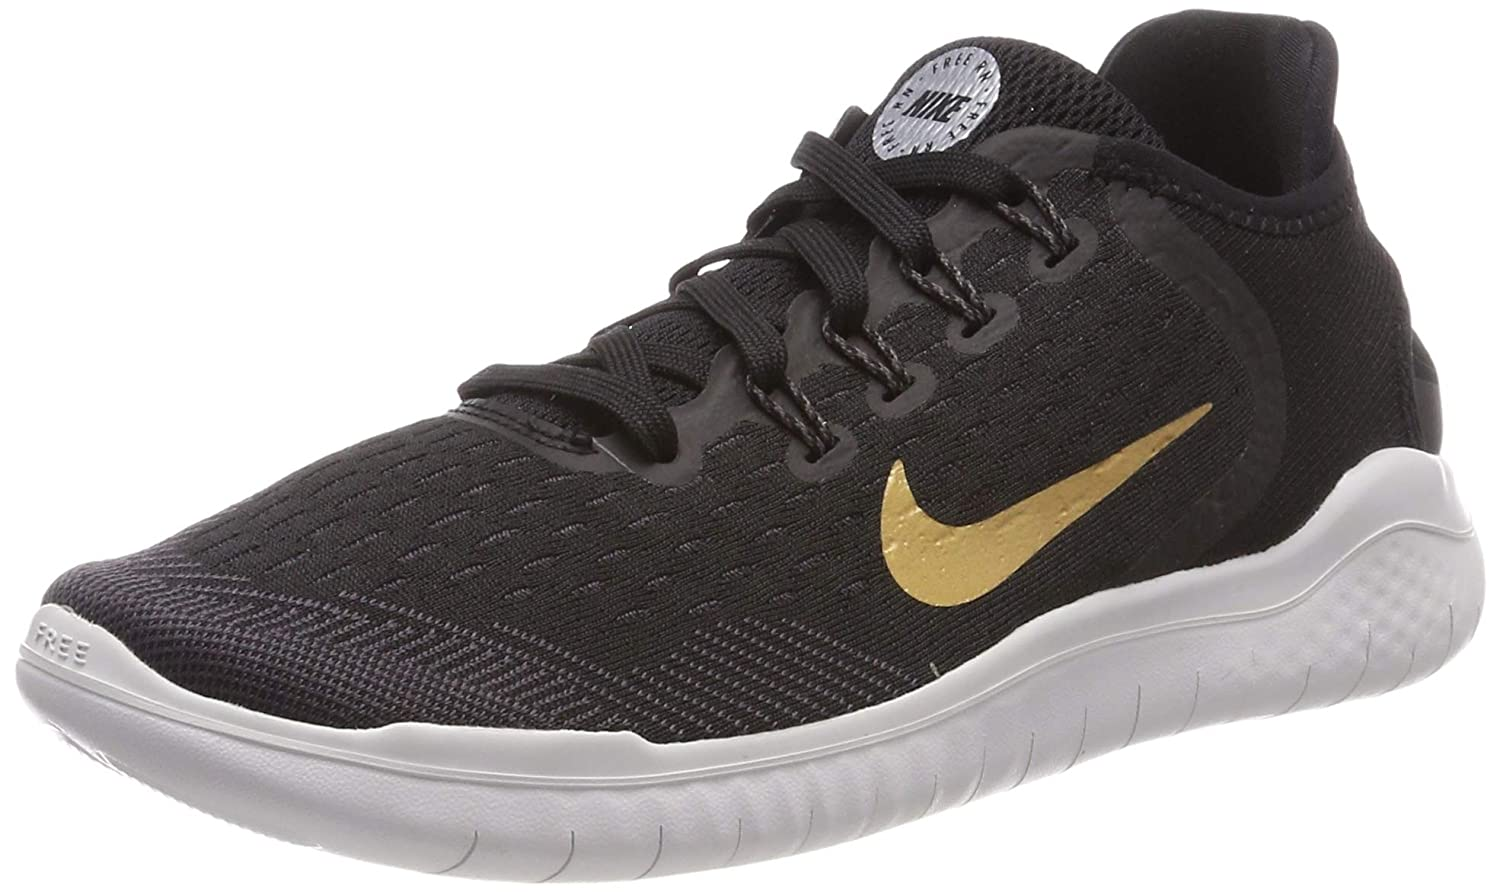 a85a41c798a0 Amazon.com  Nike Women s Free RN 2018 Black Metallic Gold Vast Grey Running  Shoe 7.5 Women US  Sports   Outdoors